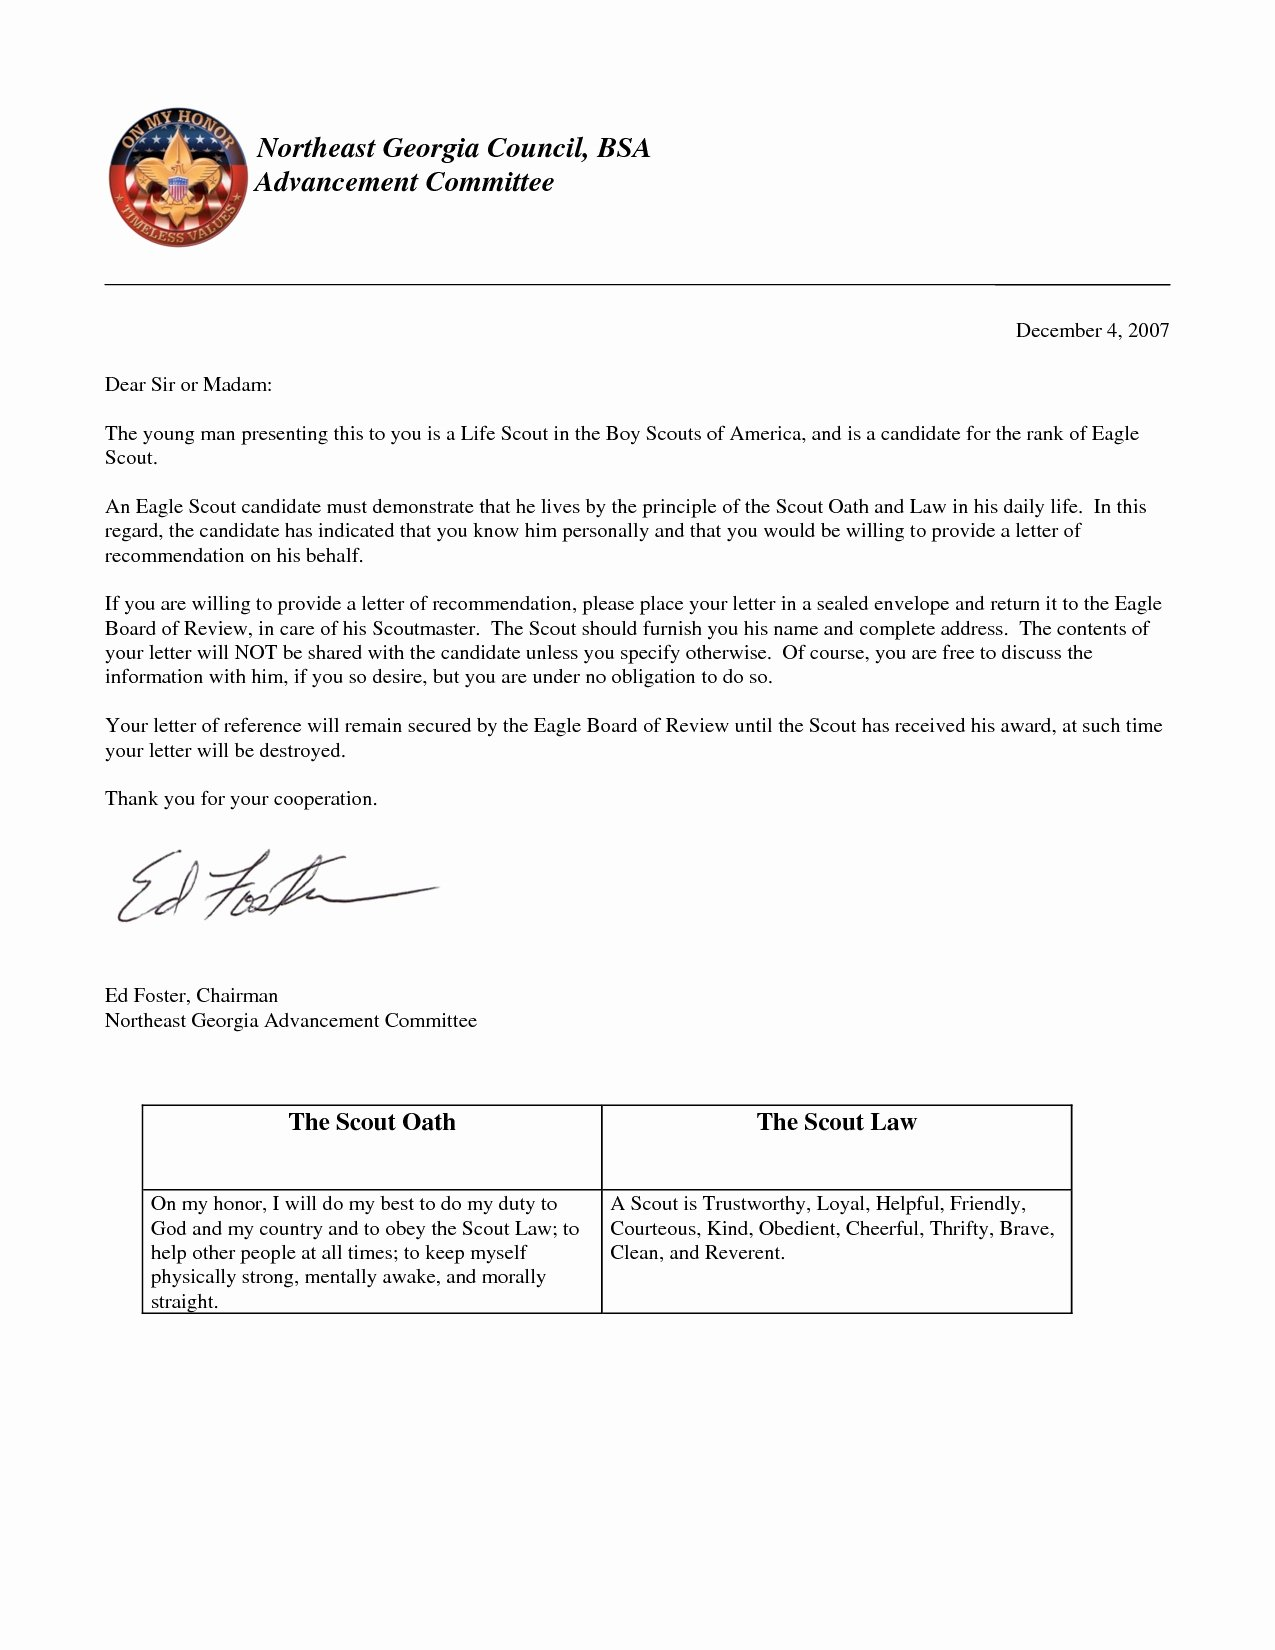 Sample Eagle Scout Recommendation Letter Best Of Eagle Scout Letter Re Mendation